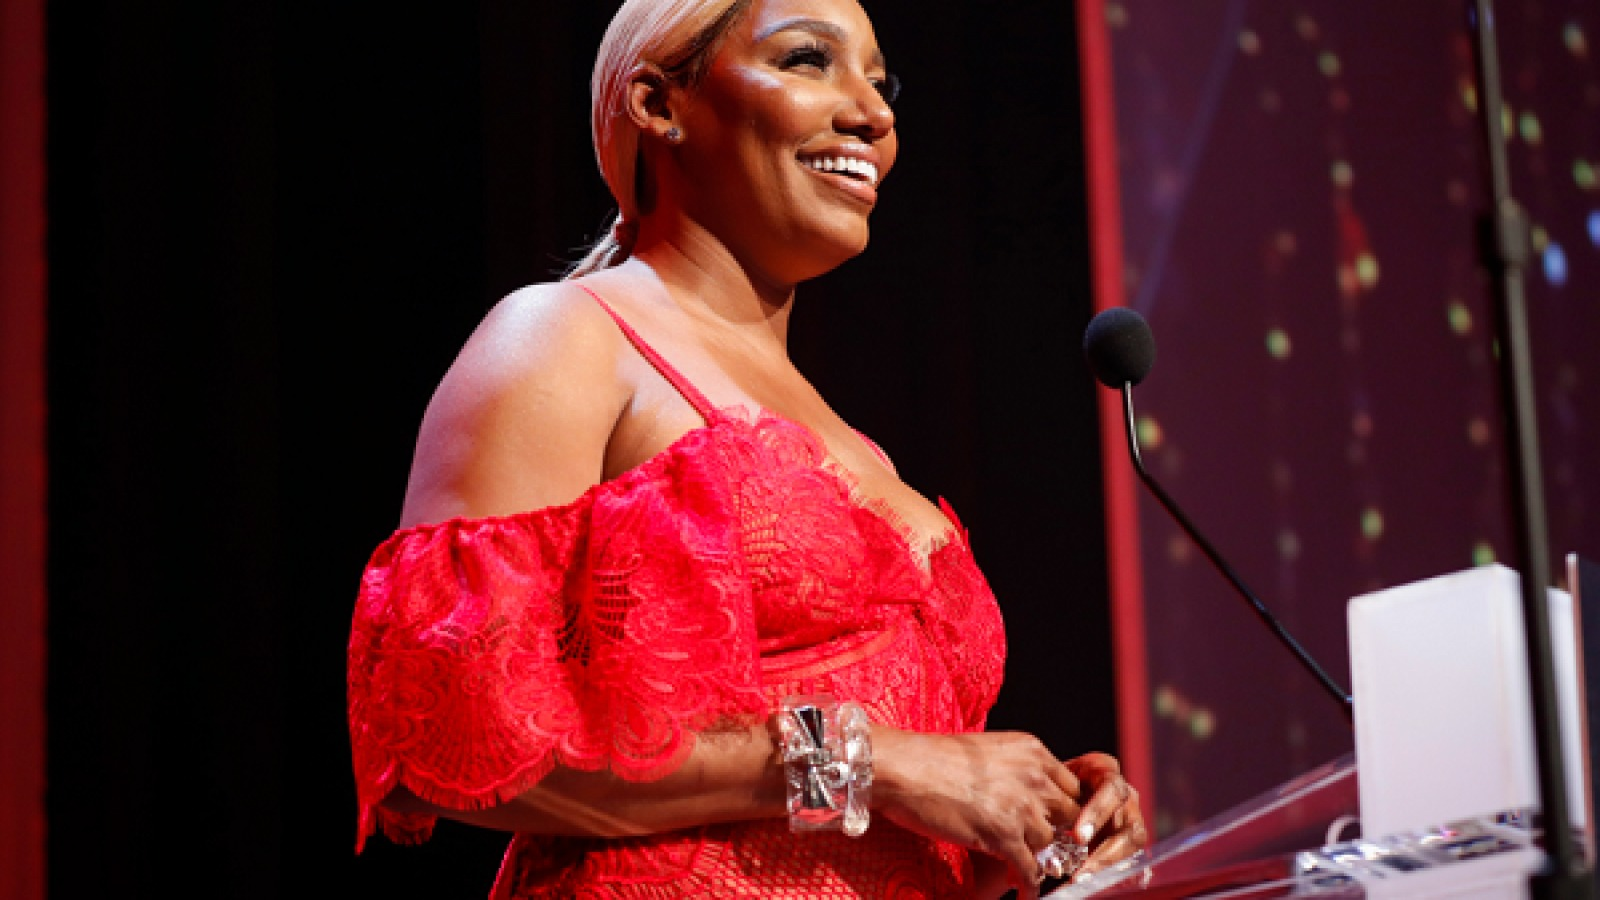 NeNe Leakes Has Fans Laughing Their Hearts Out With This Video In Which She's Spitting Some Rhymes